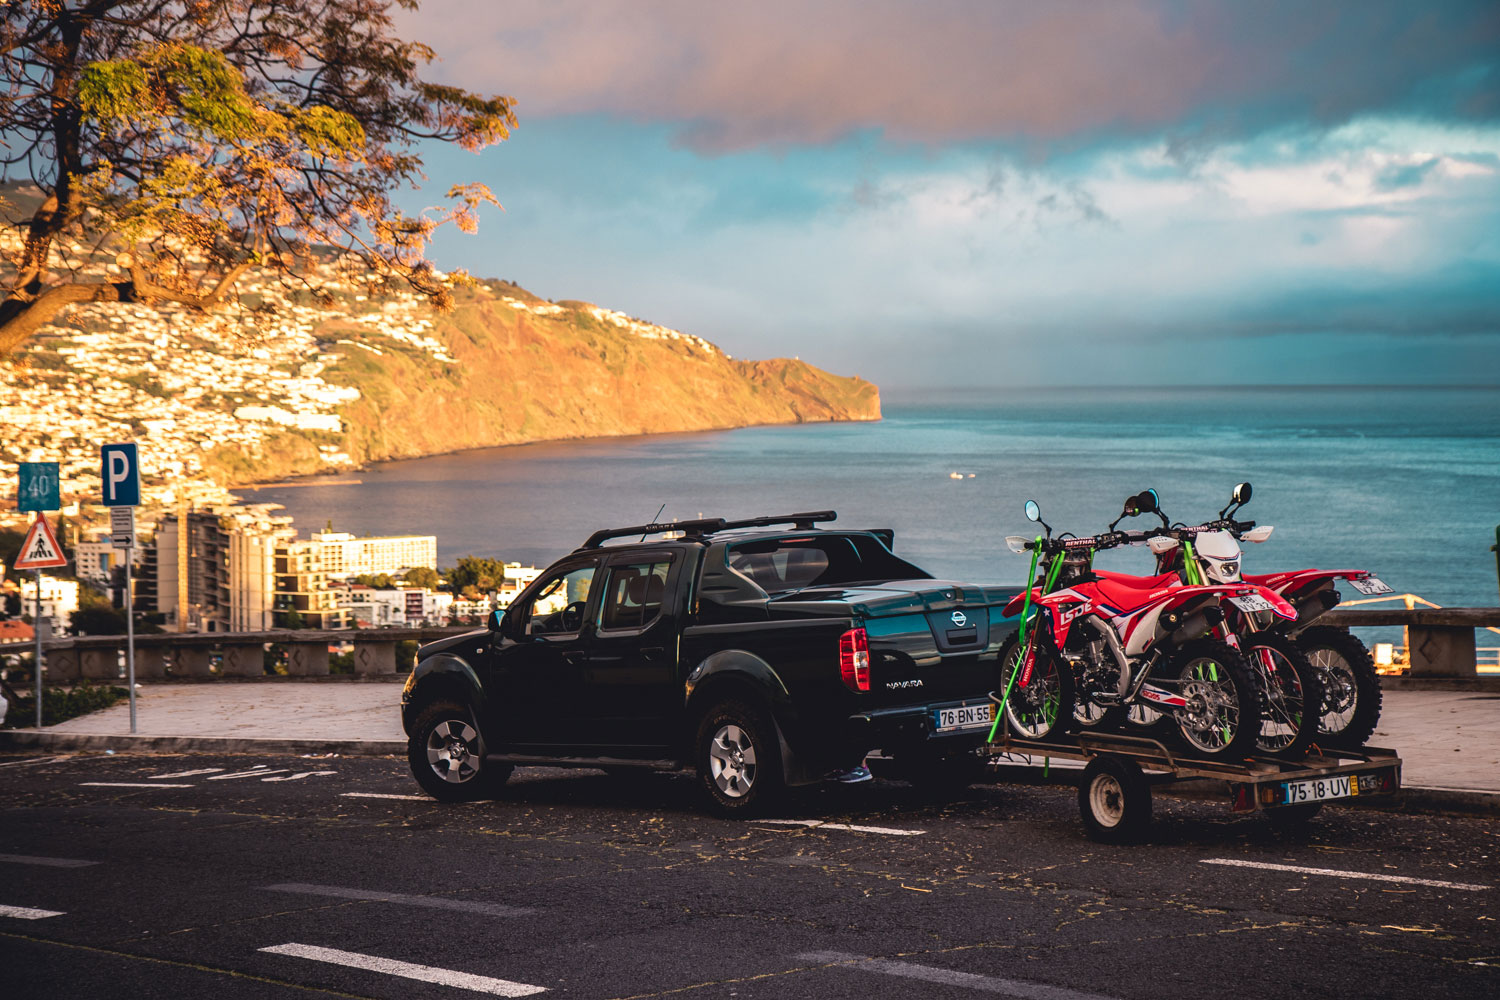 A Navara taking three hondas CRF450RX on a trailer parked up in Funchal